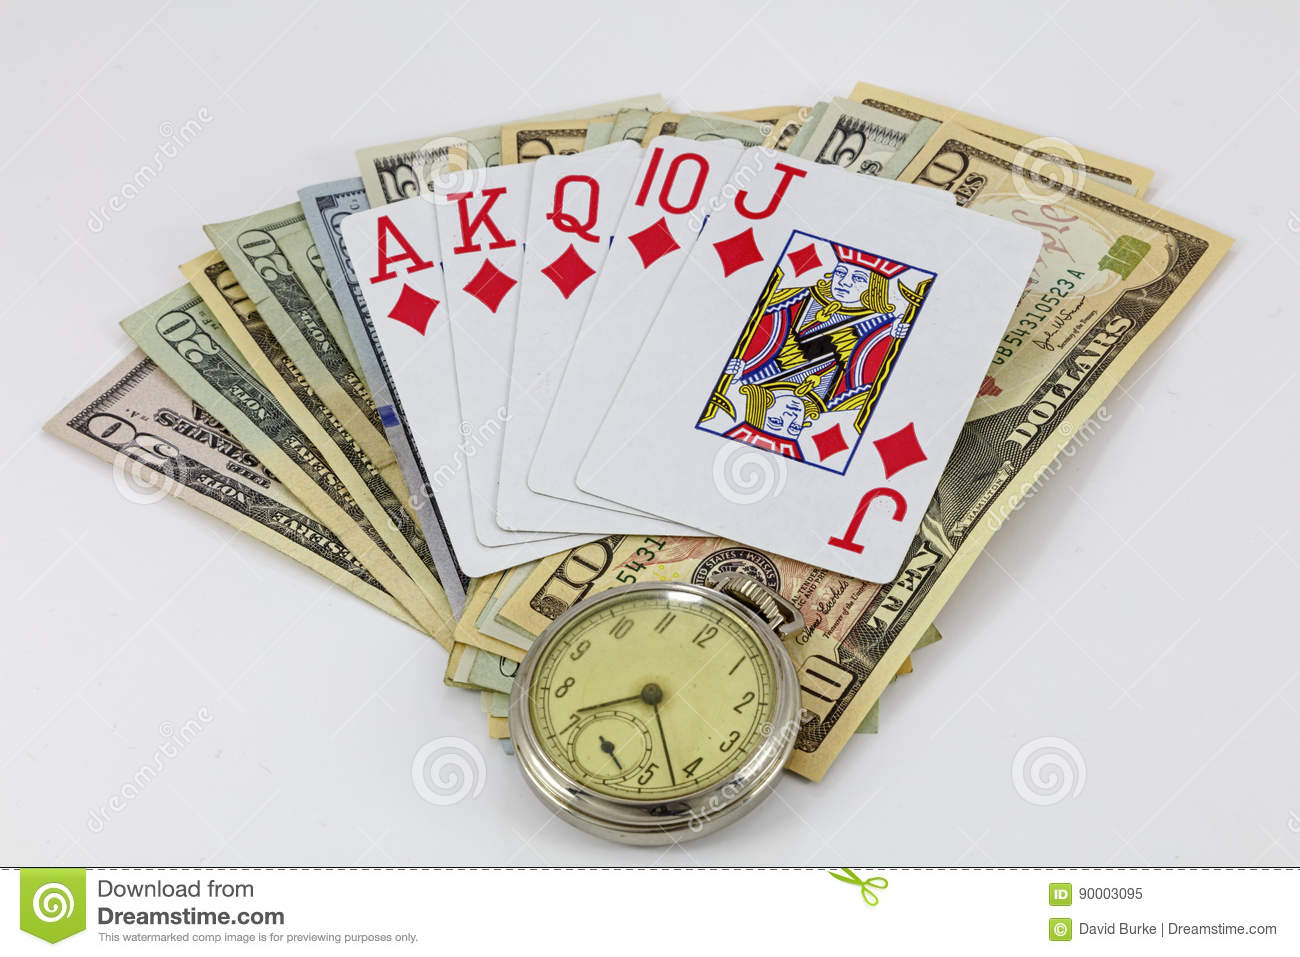 How to Gamble - 945892